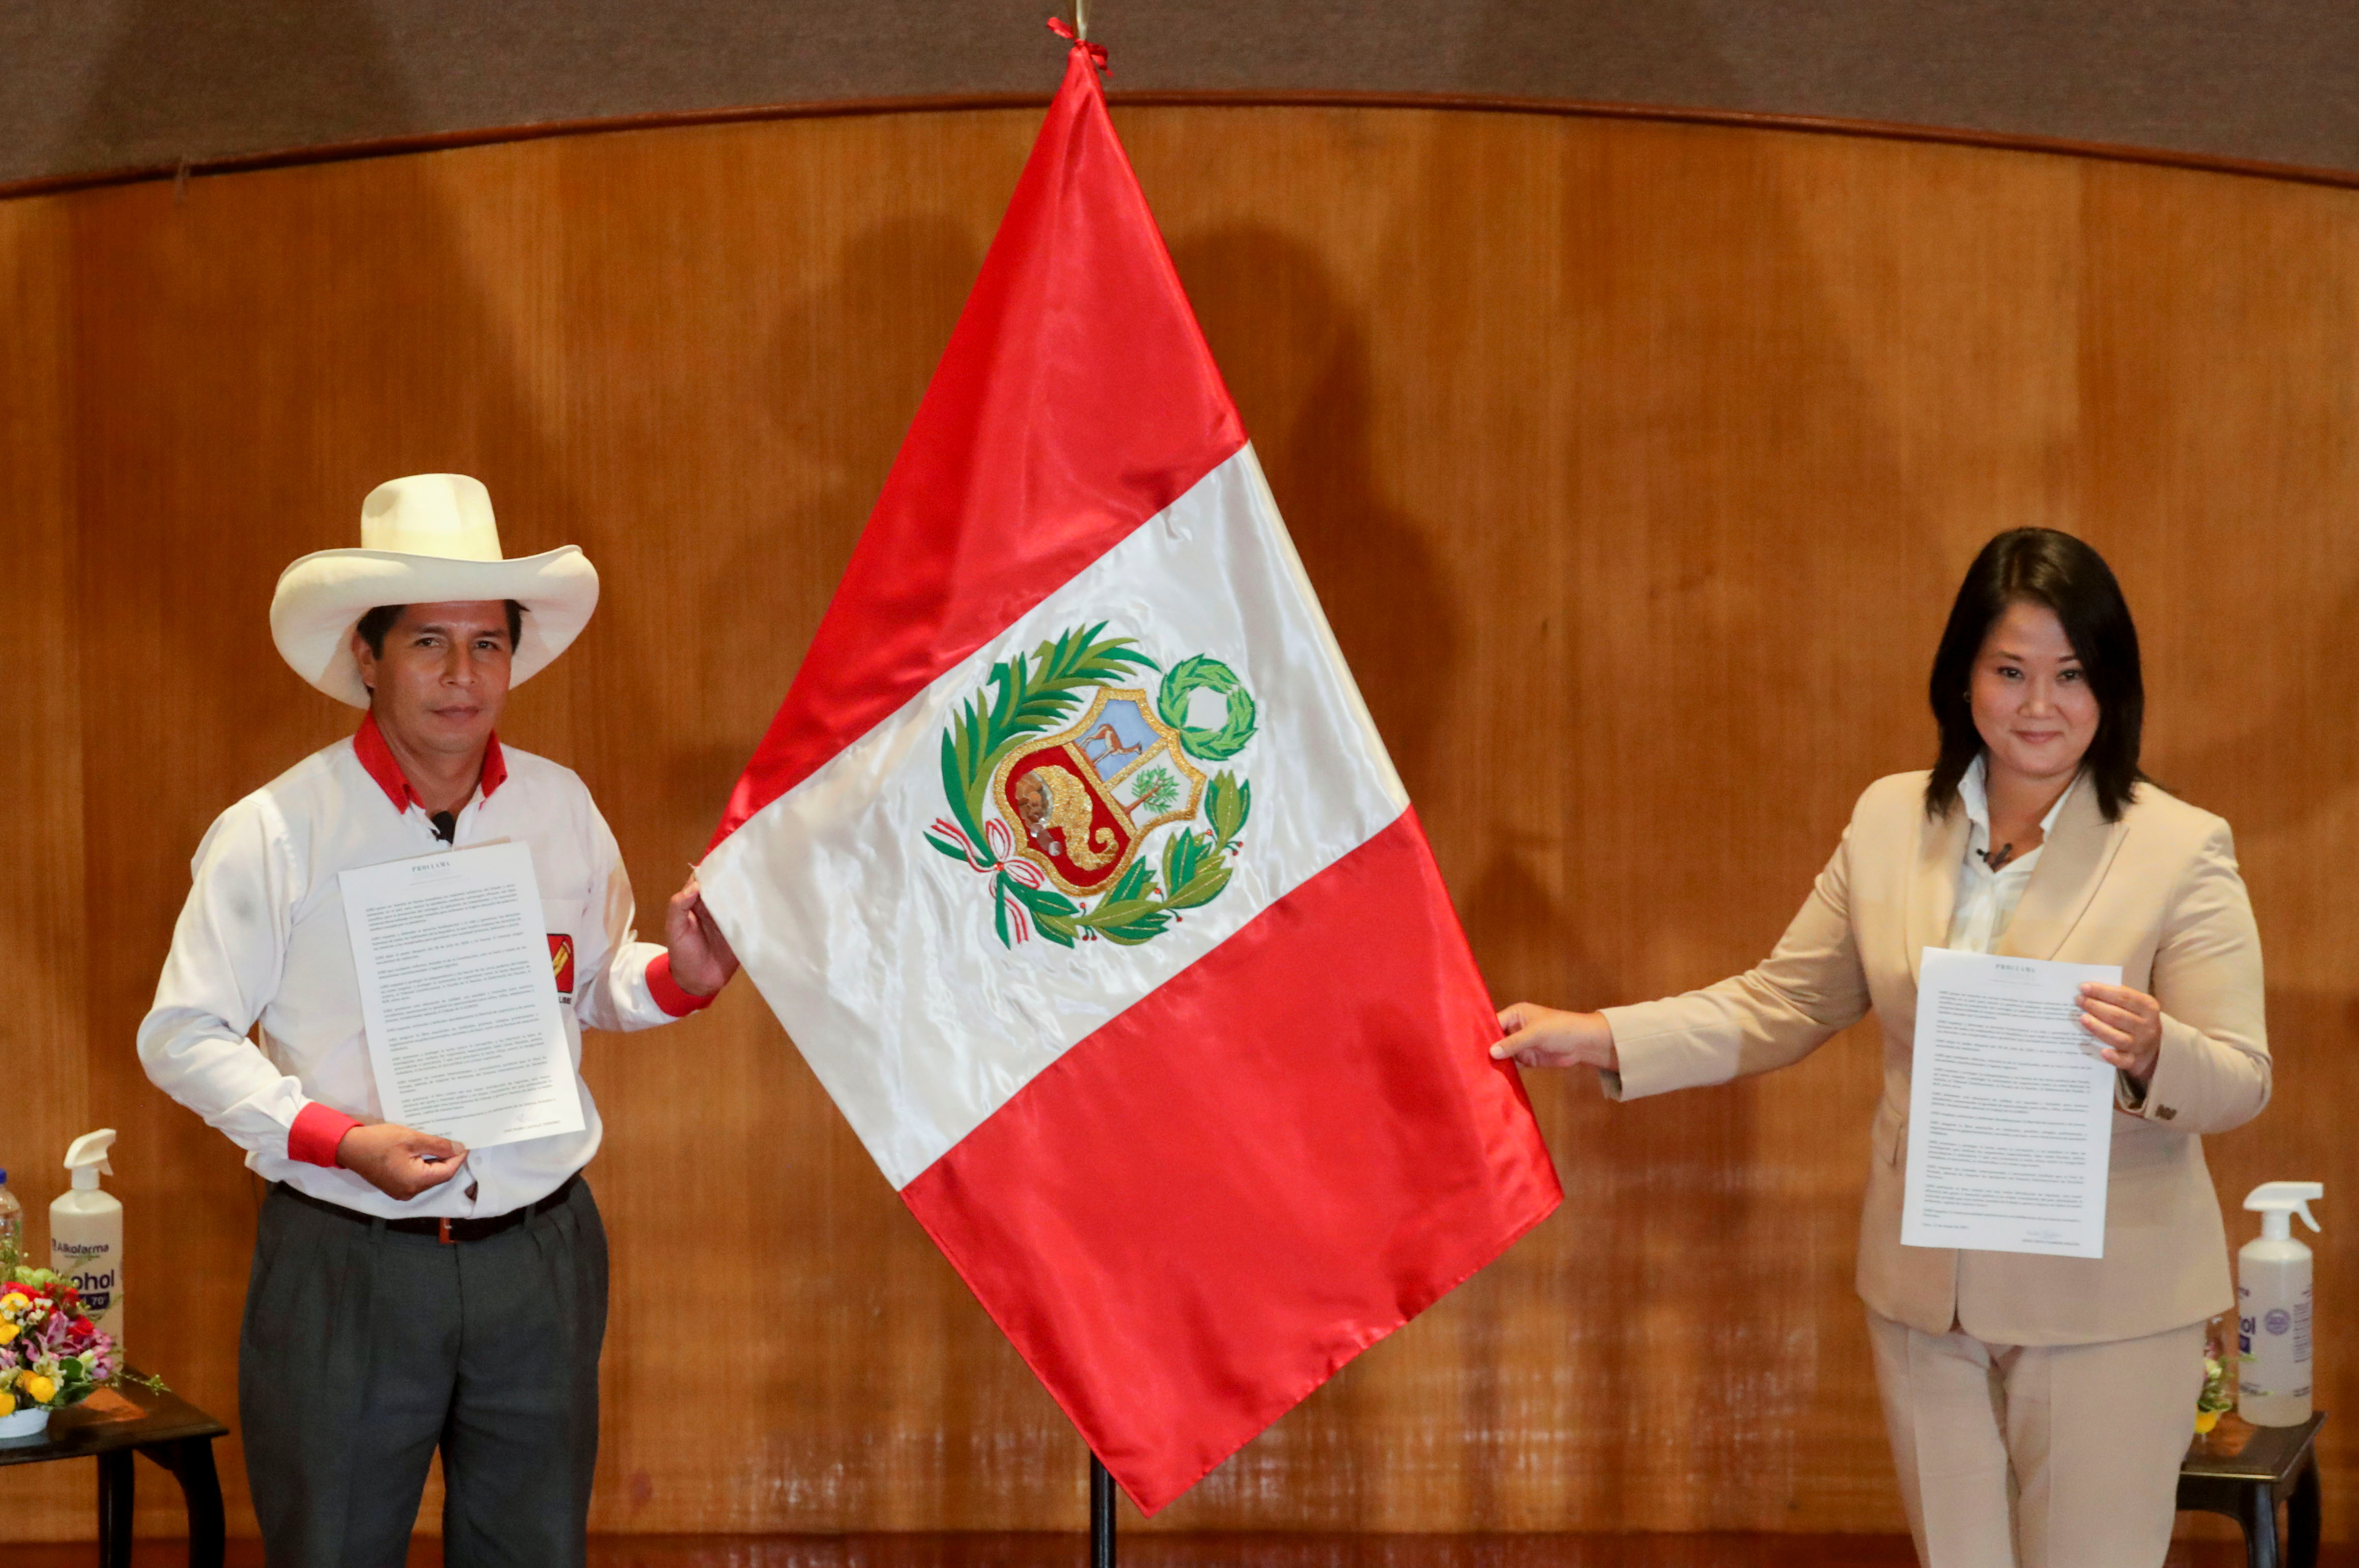 Peruvian presidential candidates Pedro Castillo and Keiko Fujimori, who will face each other in a run-off vote on June 6, hold Peru's national flag after signing a